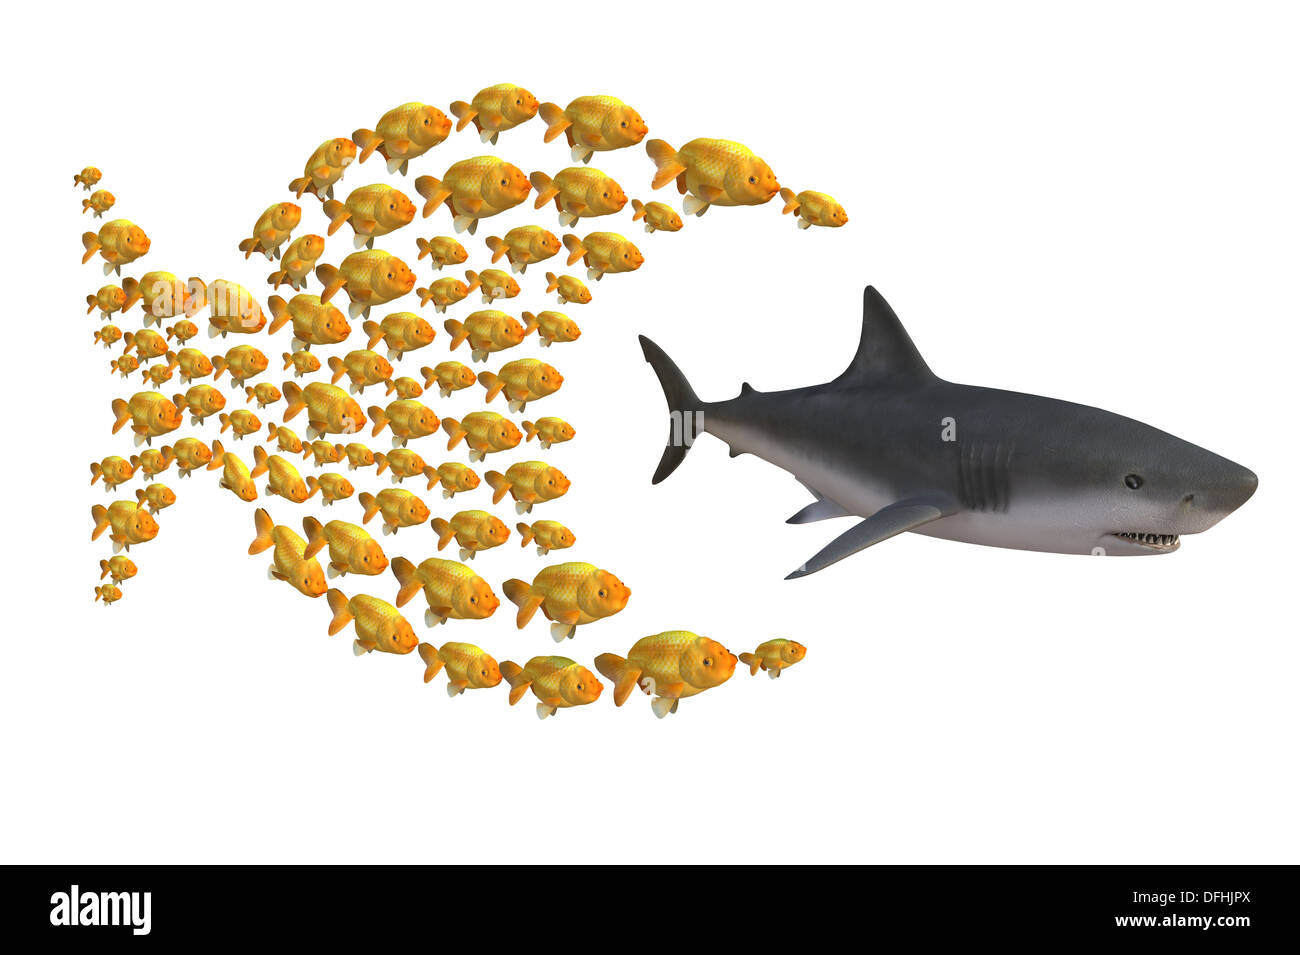 fish group chasing shark, concept unity is strength, 3d illustration - Stock Image